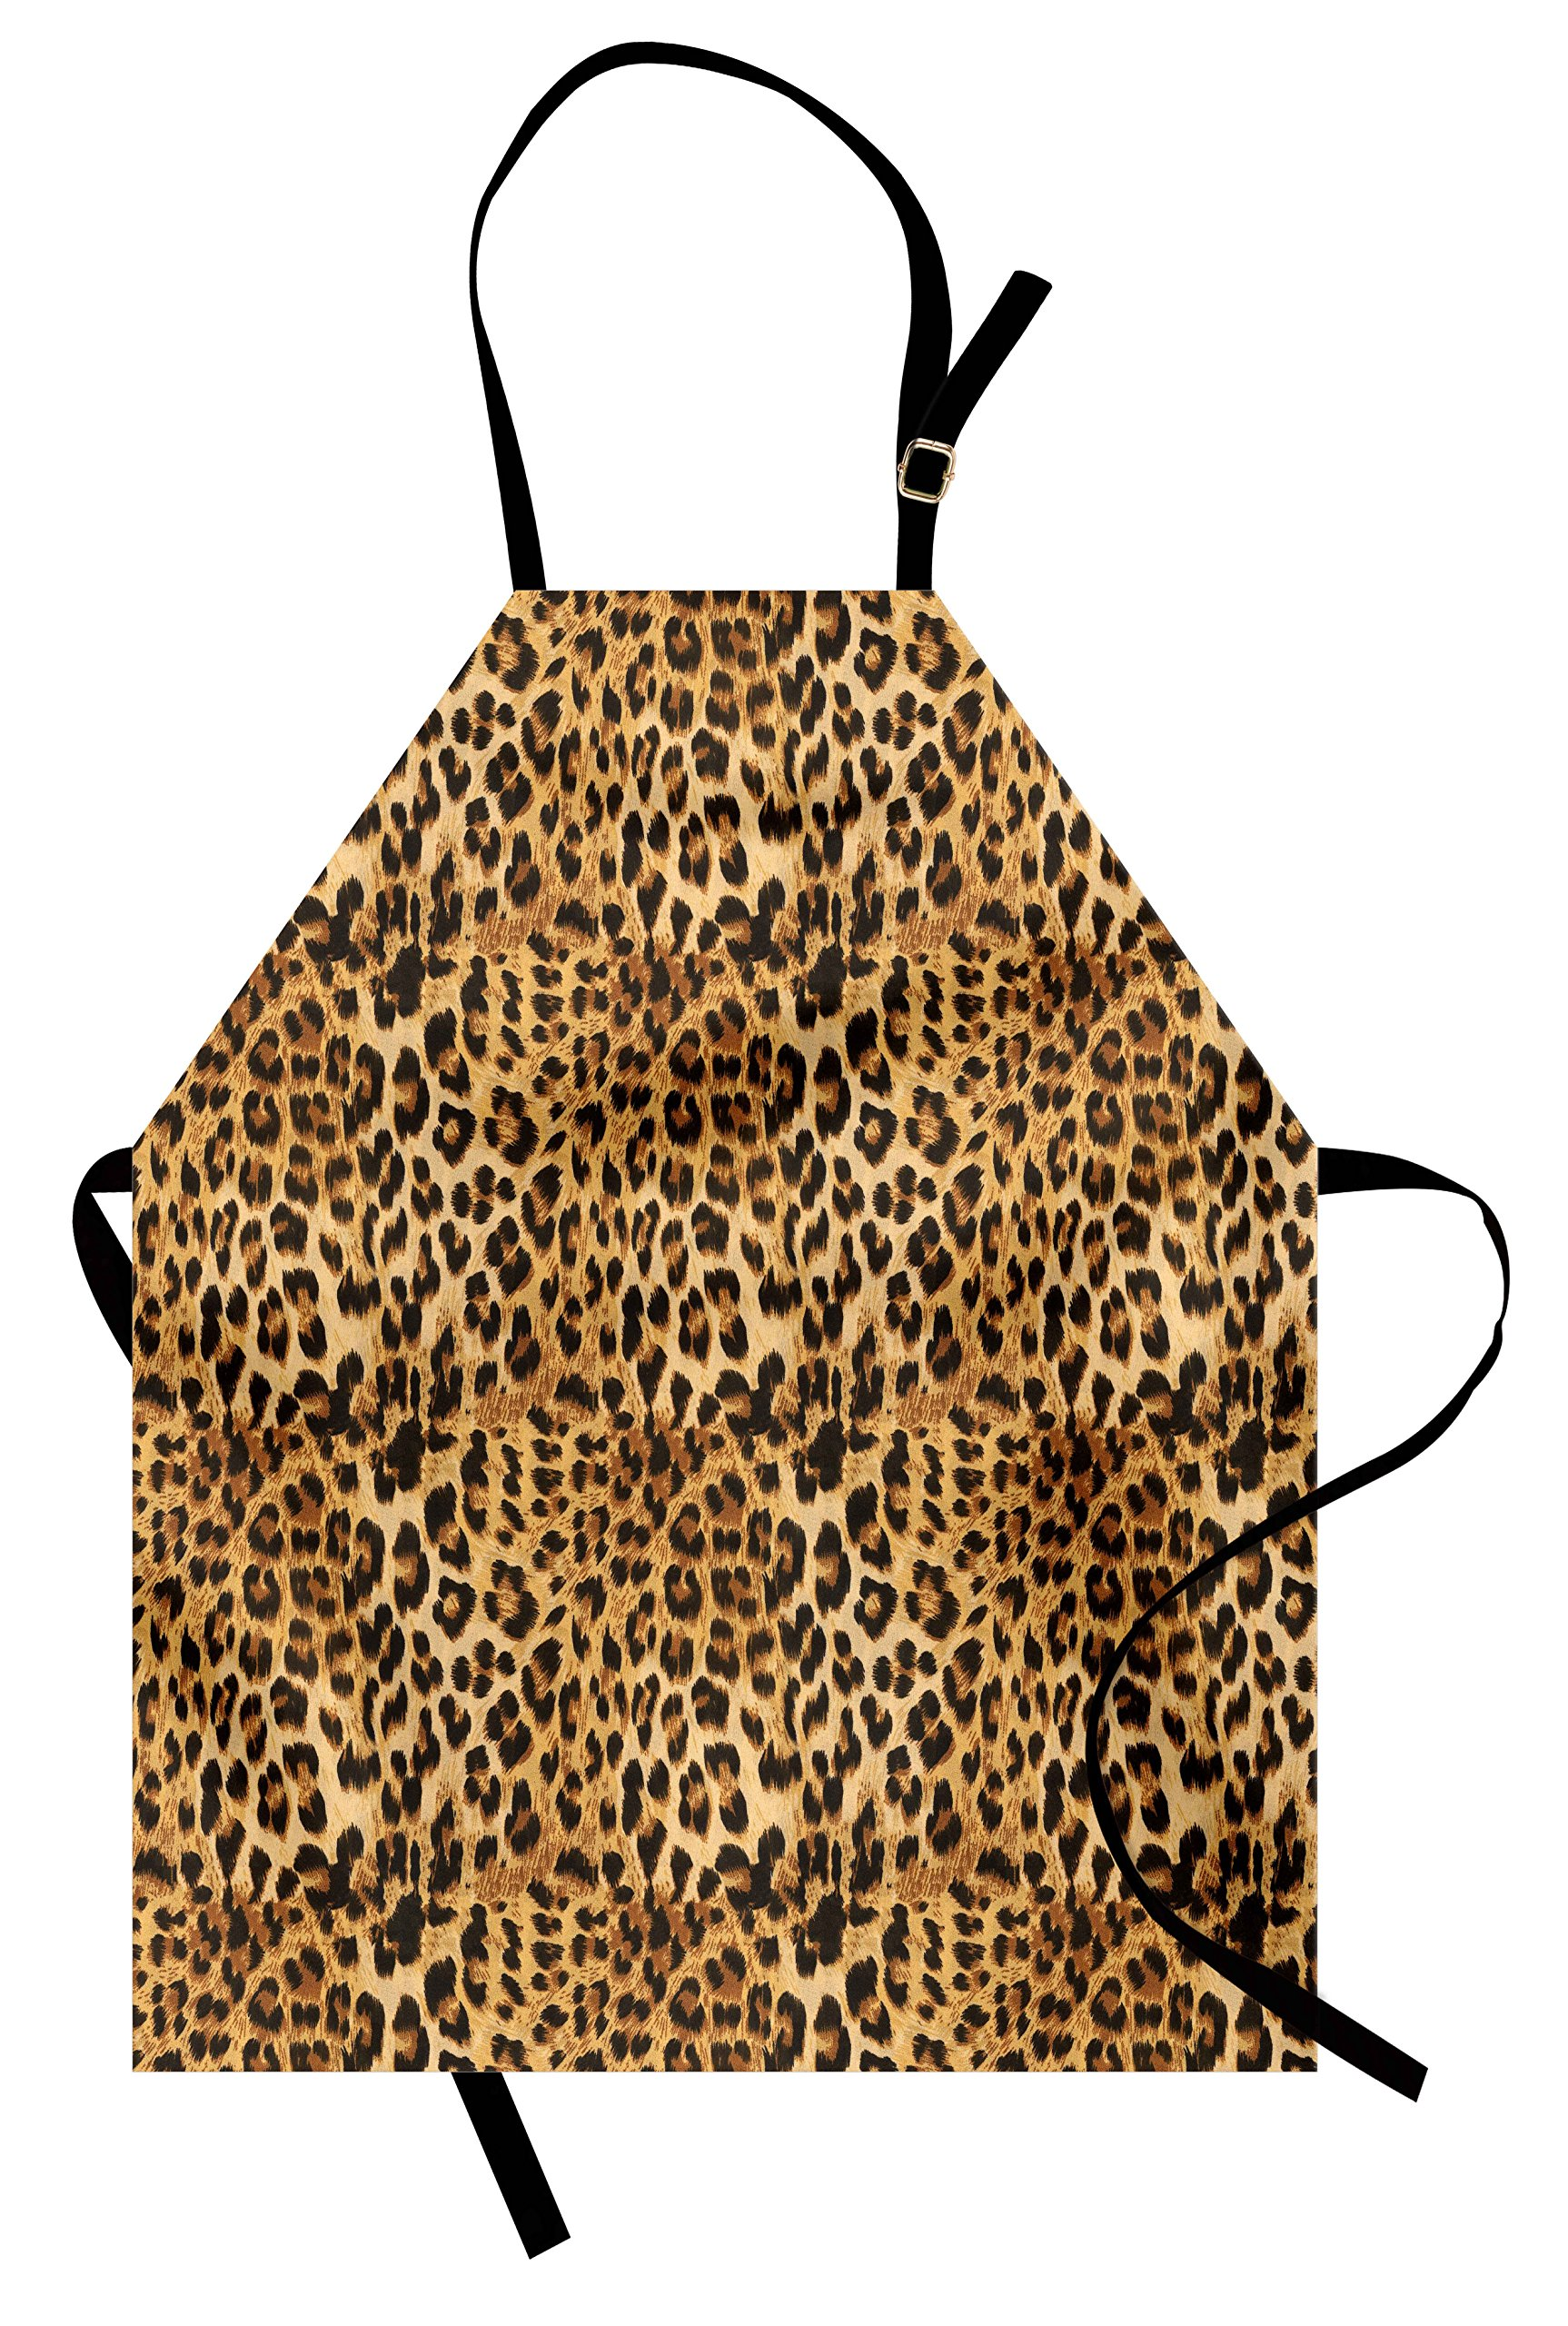 Ambesonne Brown Apron, Leopard Print Animal Skin Digital Printed Wild African Safari Themed Spotted Pattern Art, Unisex Kitchen Bib Apron with Adjustable Neck for Cooking Baking Gardening, Brown by Ambesonne